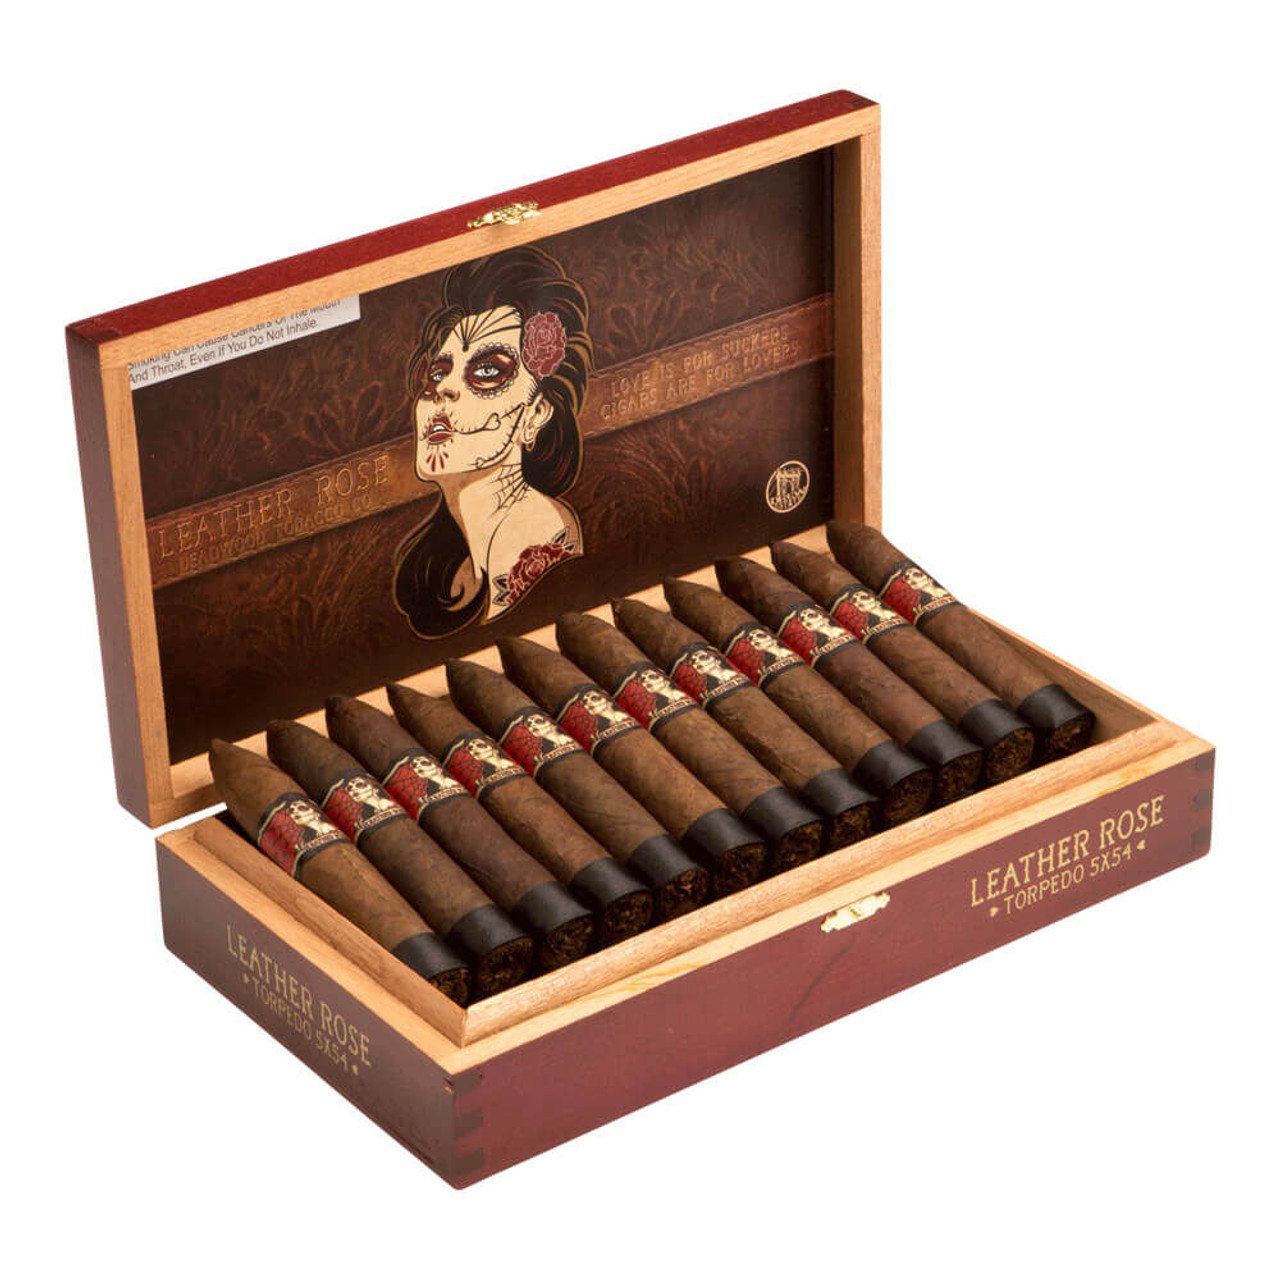 Deadwood Tobacco Co. Leather Rose Cigars - 5 x 54 (Box of 24)